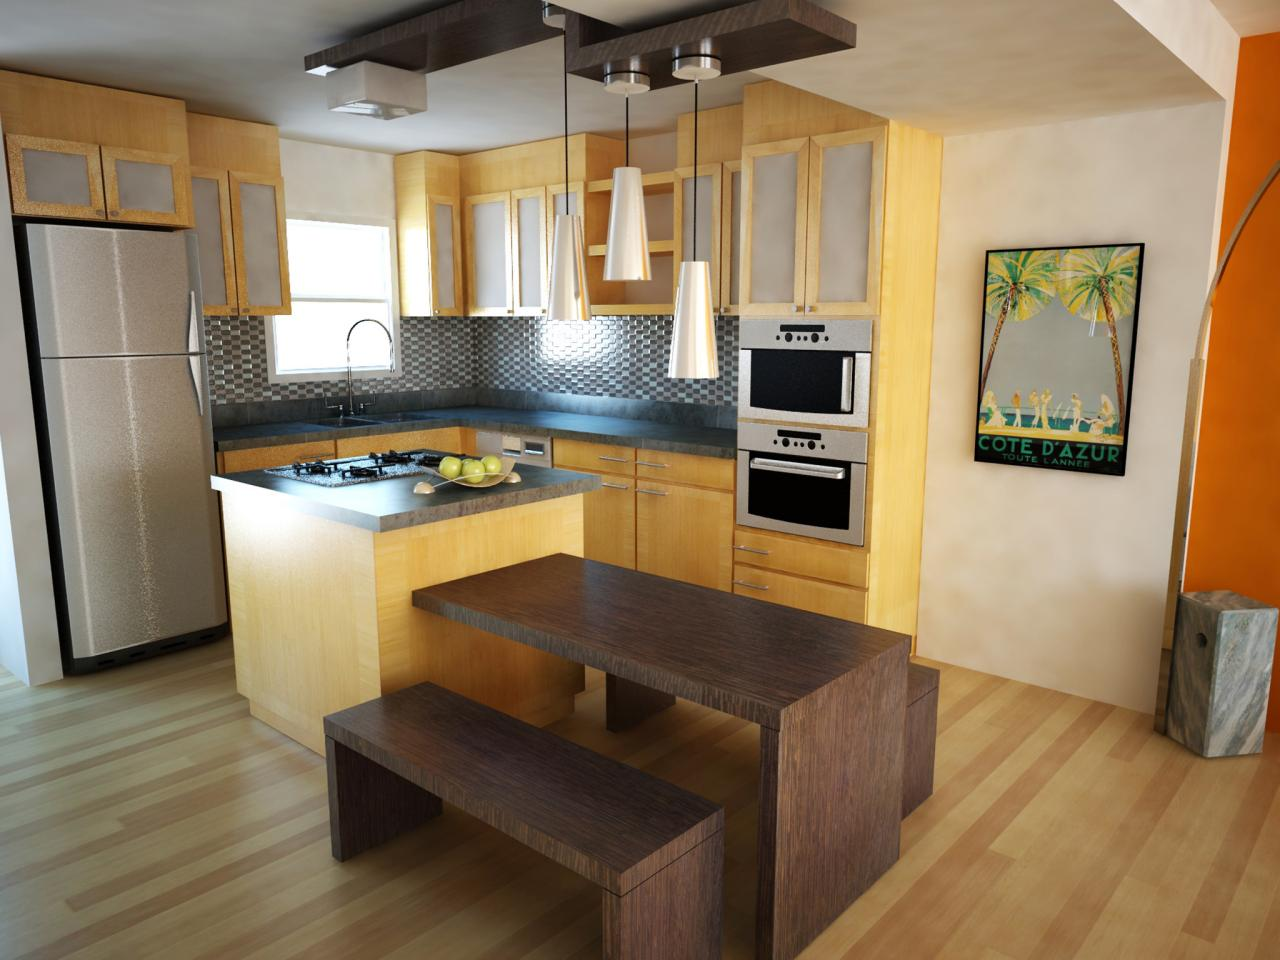 Kitchen Layout With Island Small Kitchen Island Ideas Pictures Tips From Hgtv Hgtv